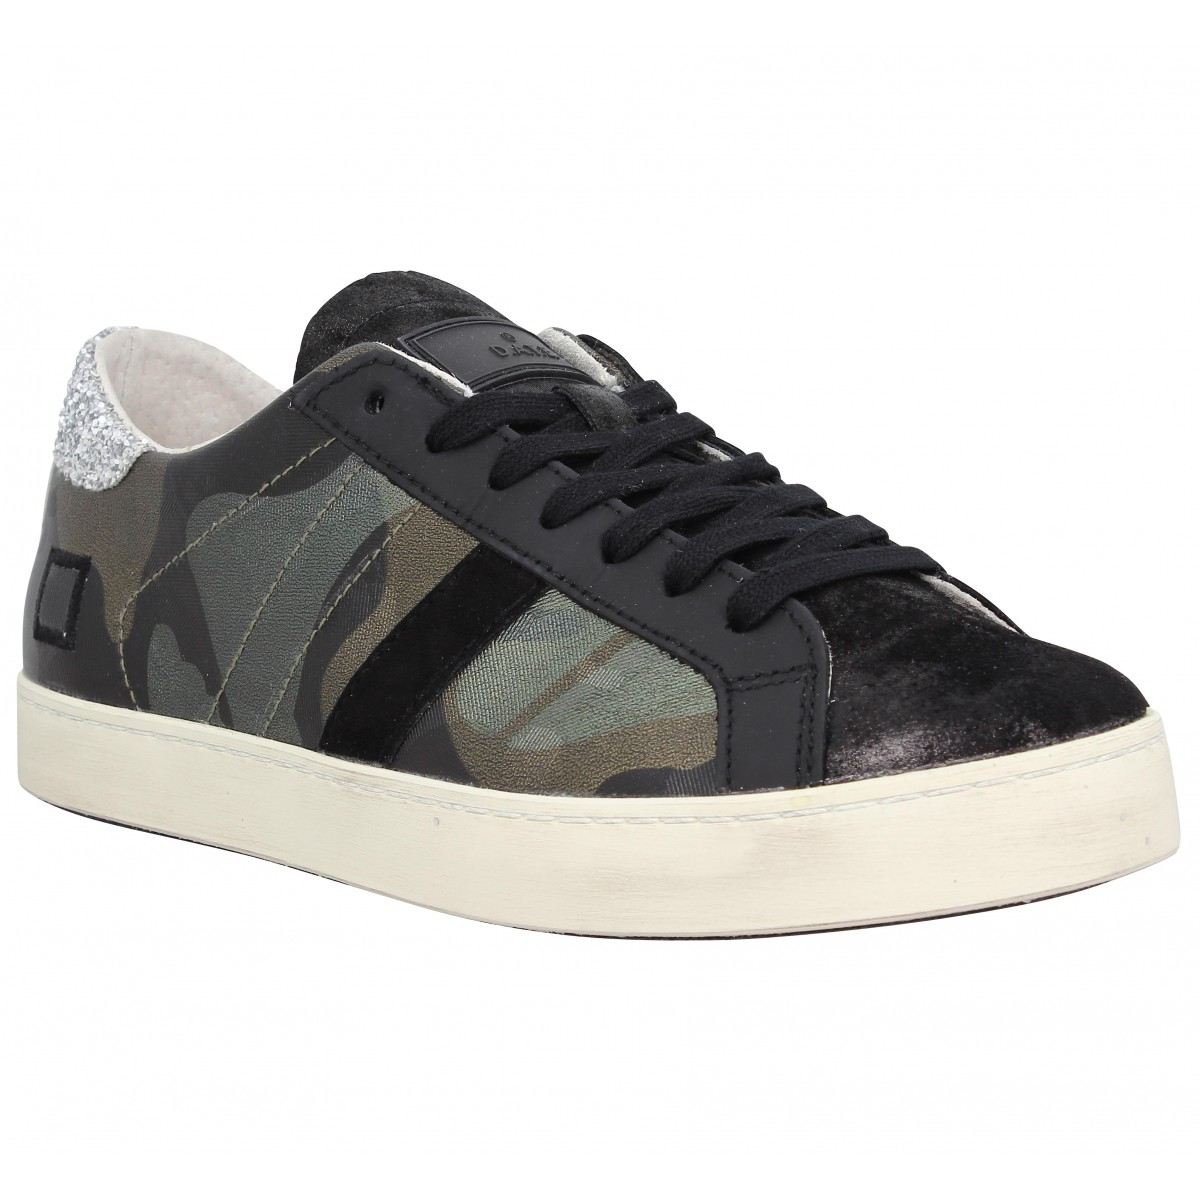 Date Chaussures  NEWMAN CAMO Date soldes Date Chaussures  NEWMAN CAMO